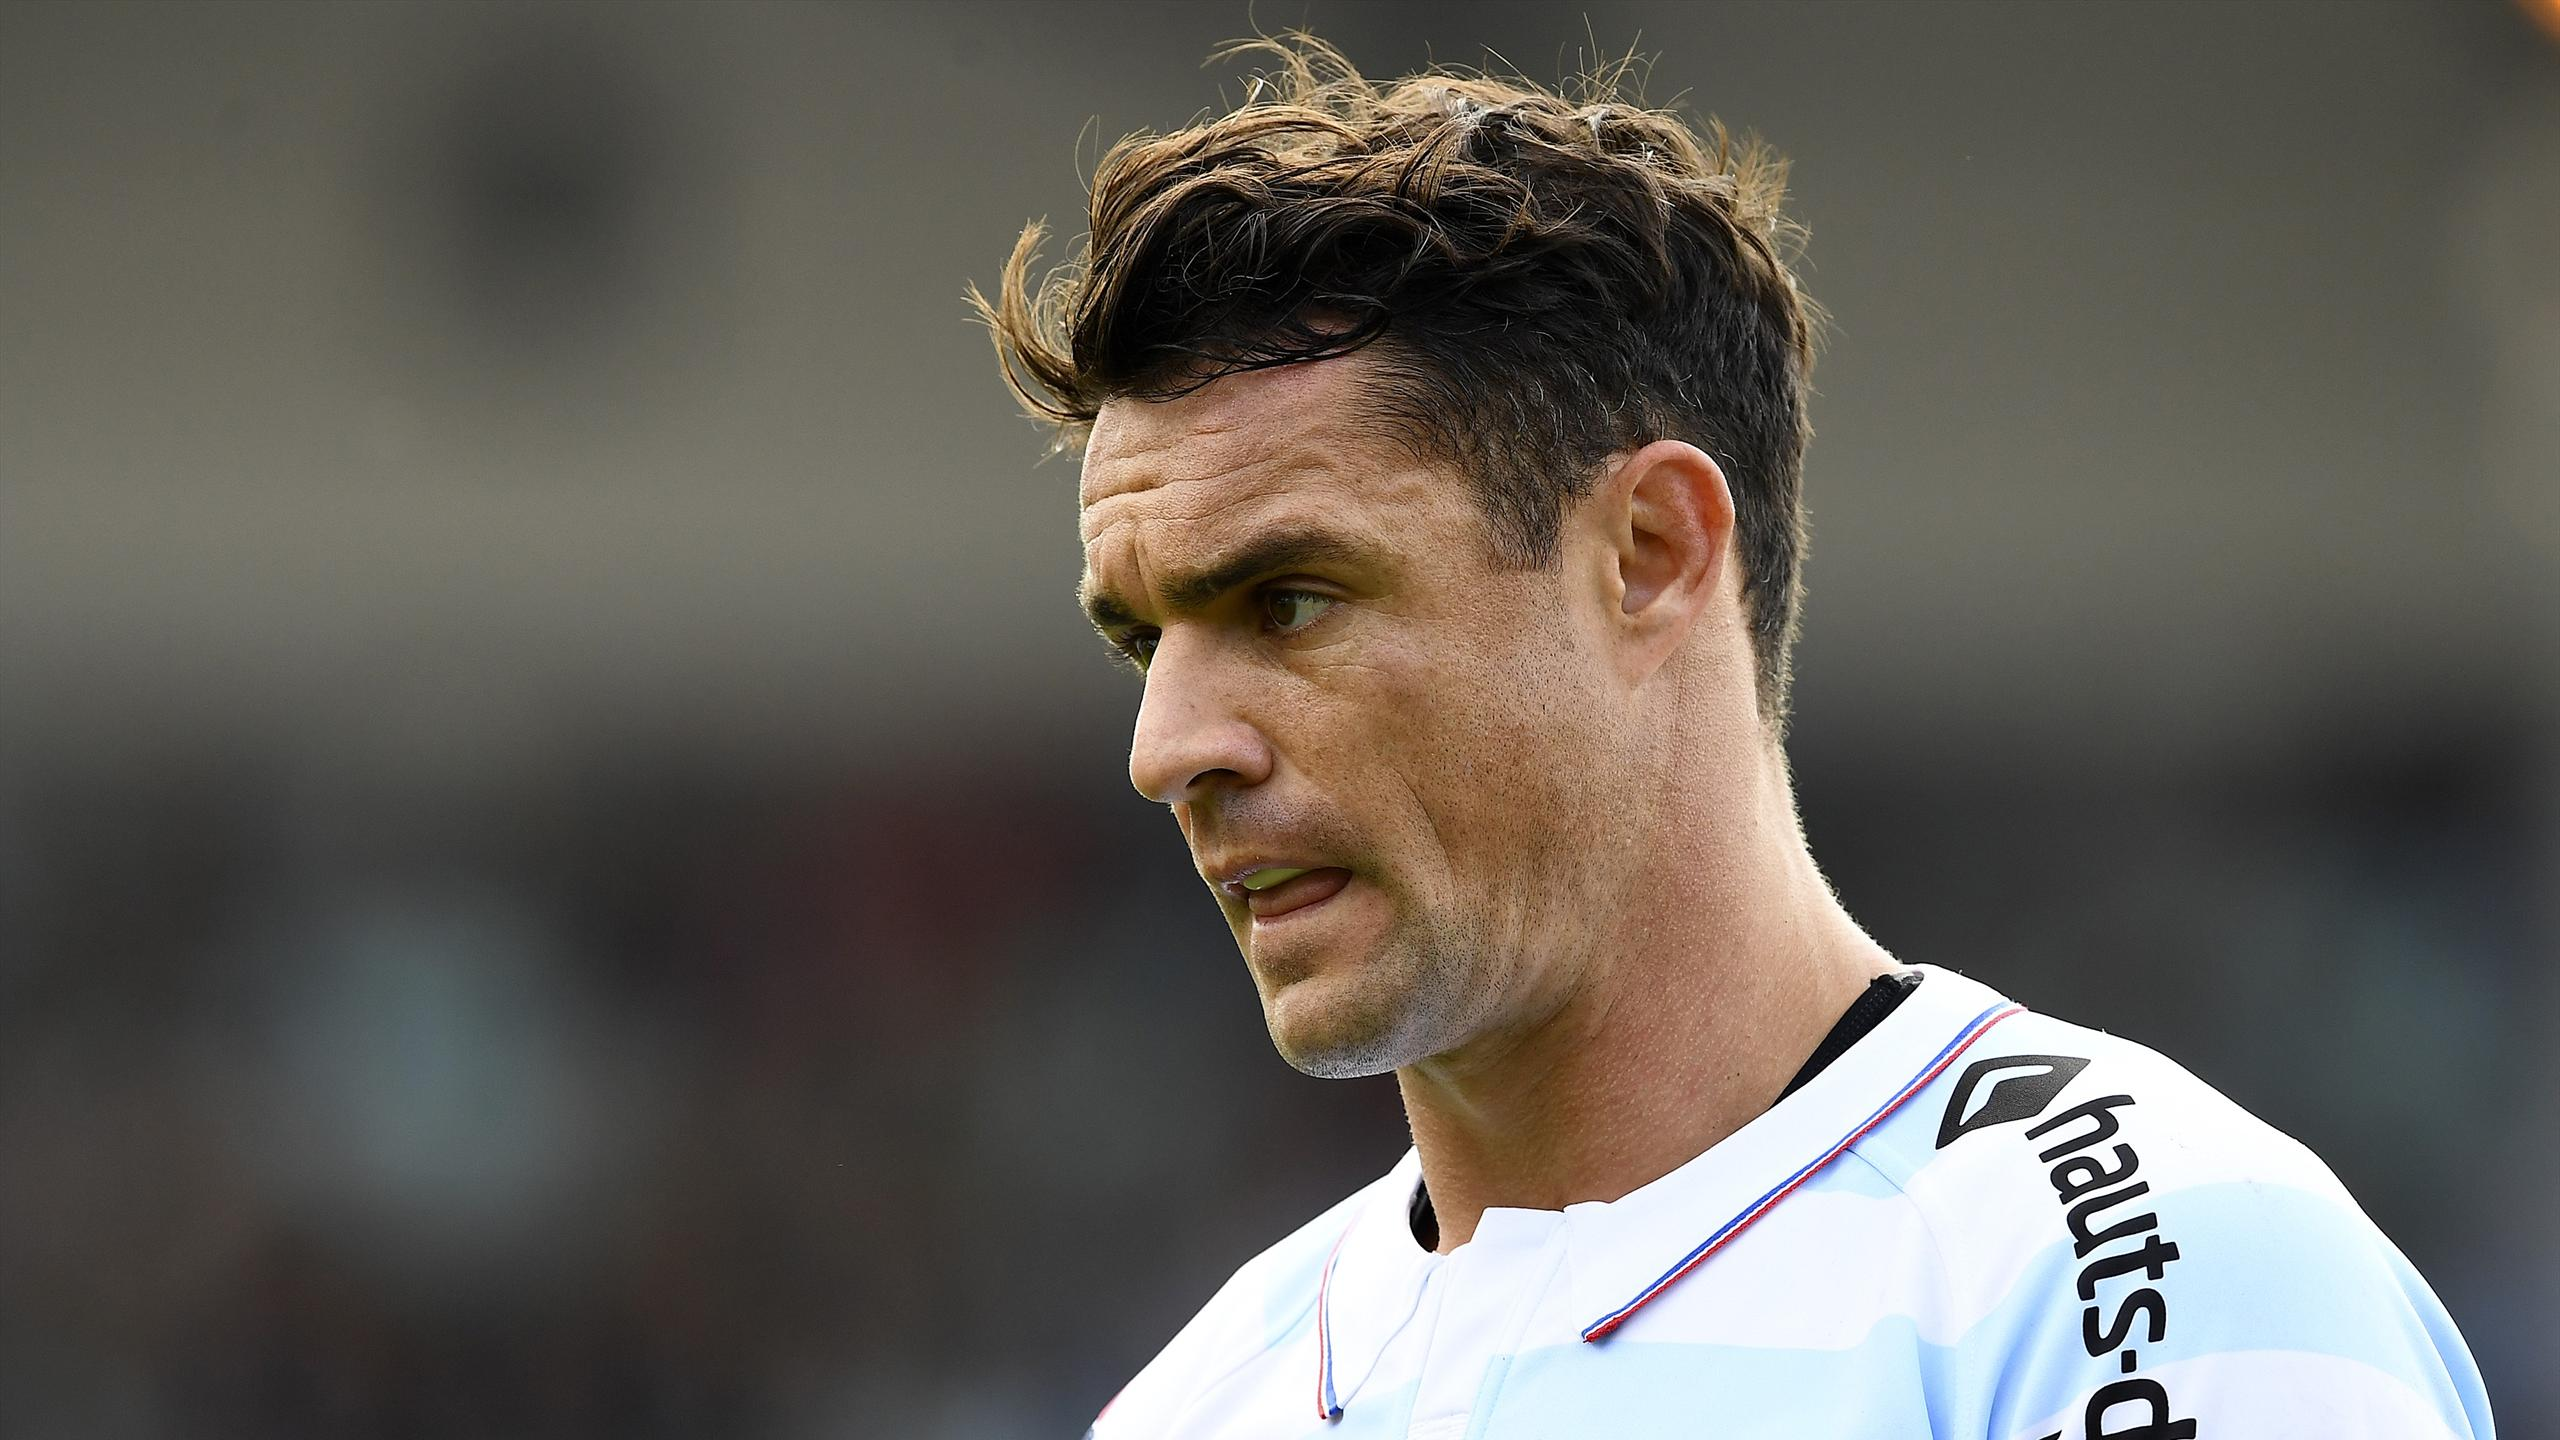 Dan Carter (Racing 92)